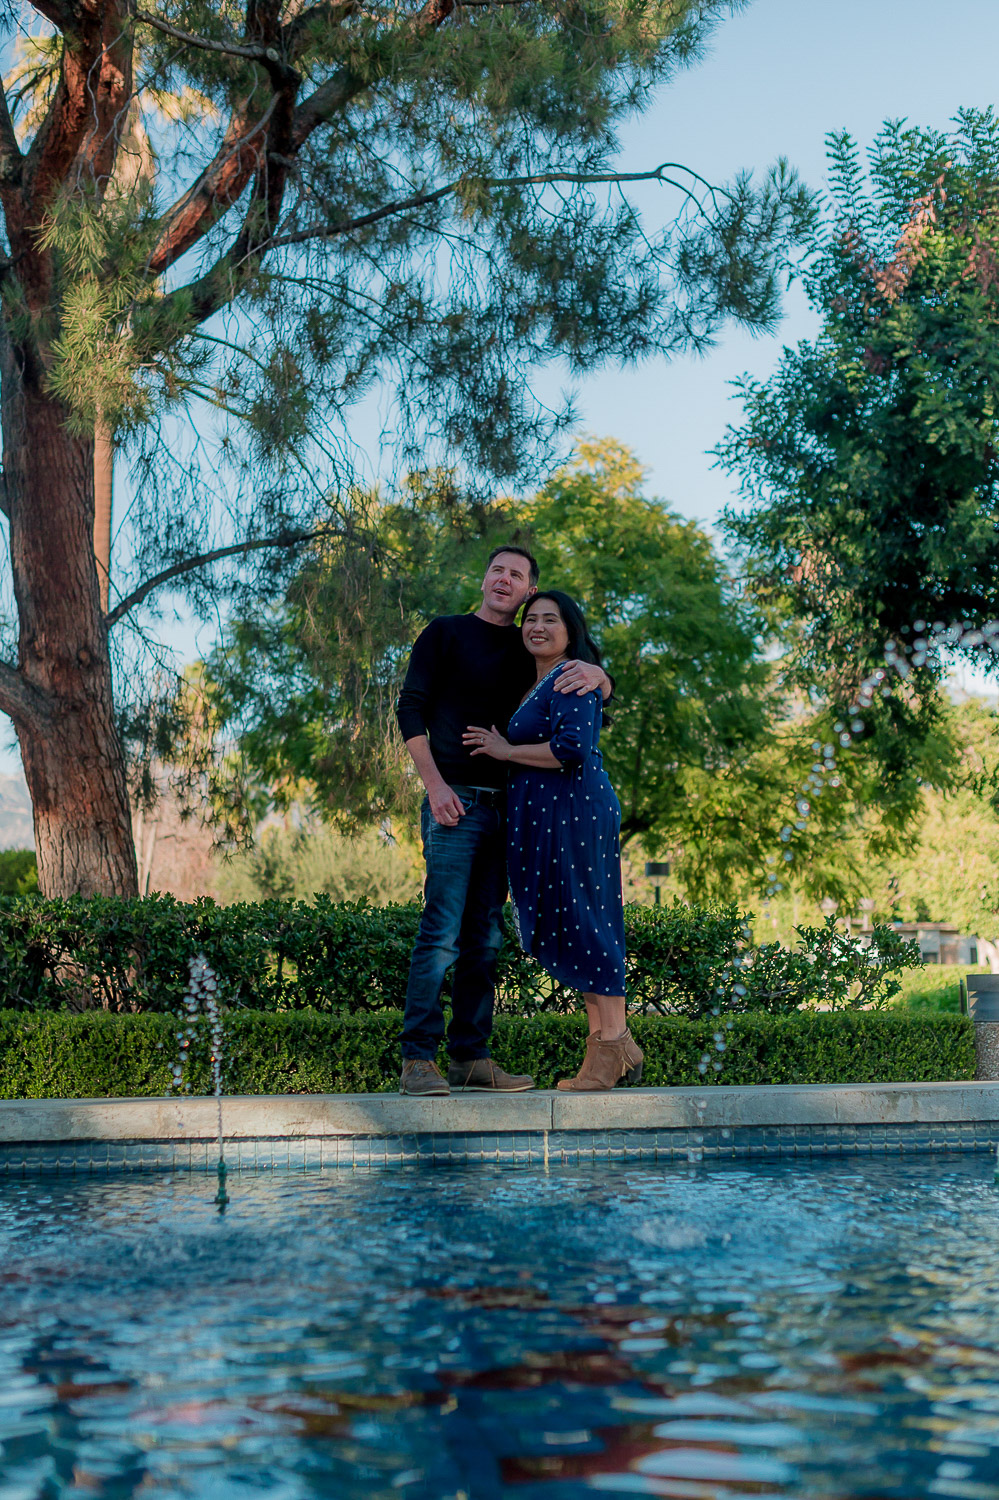 Couple in front of water garden